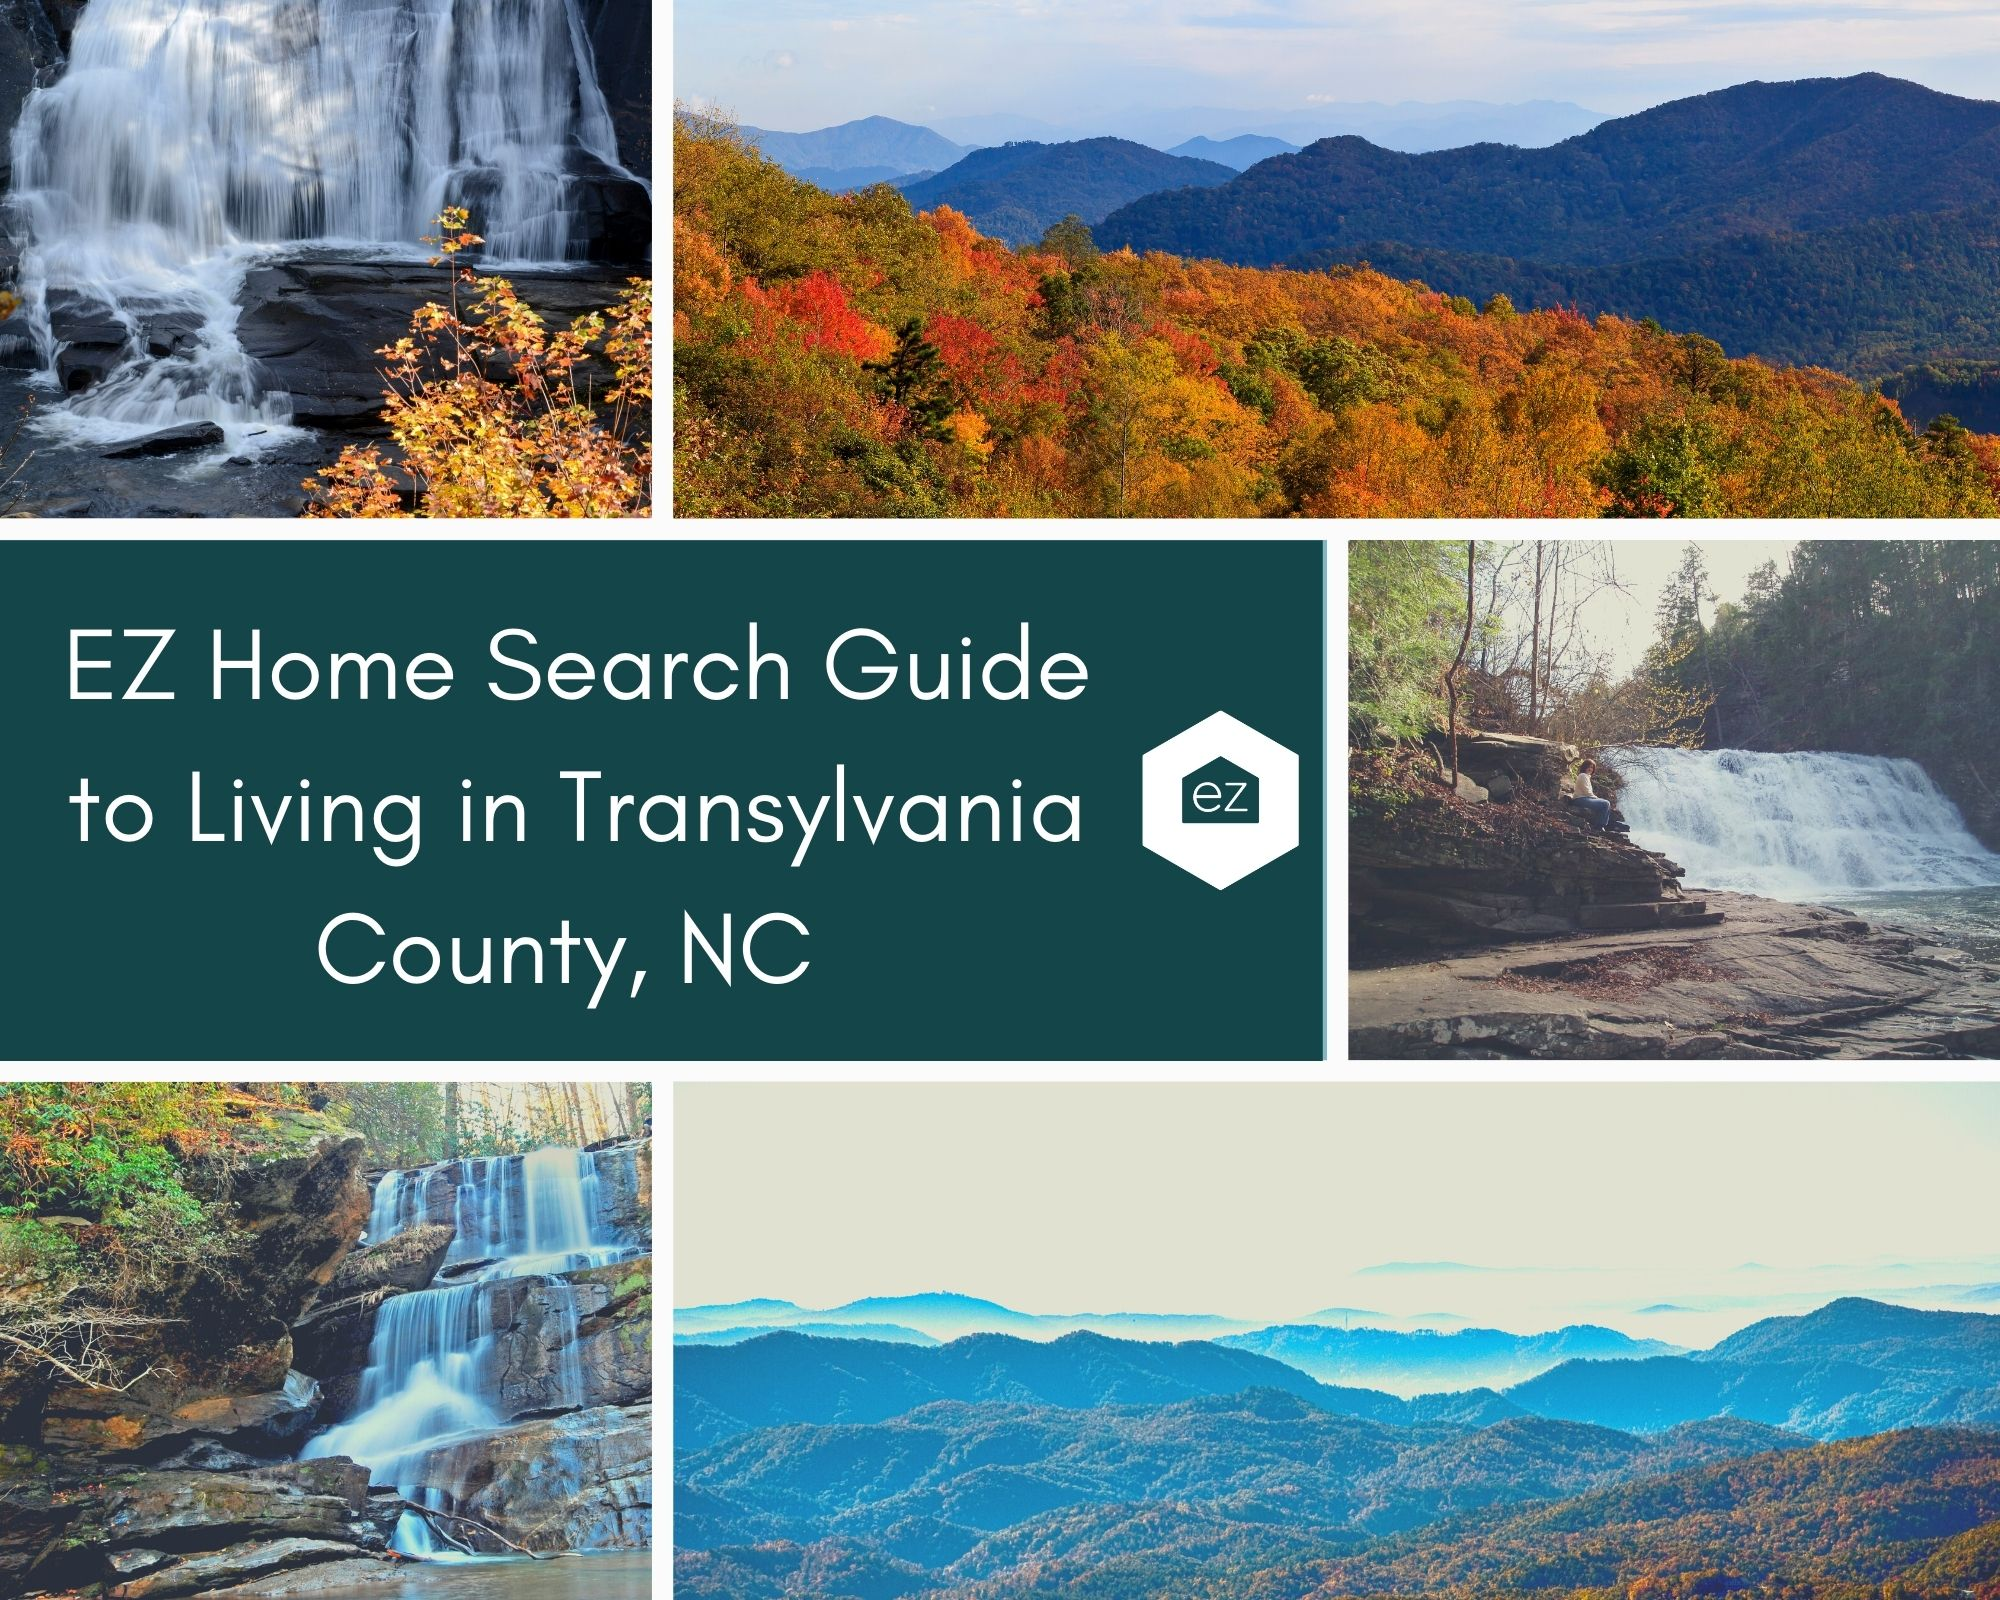 Photos taken from Transylvania County, NC with waterfalls and mountains